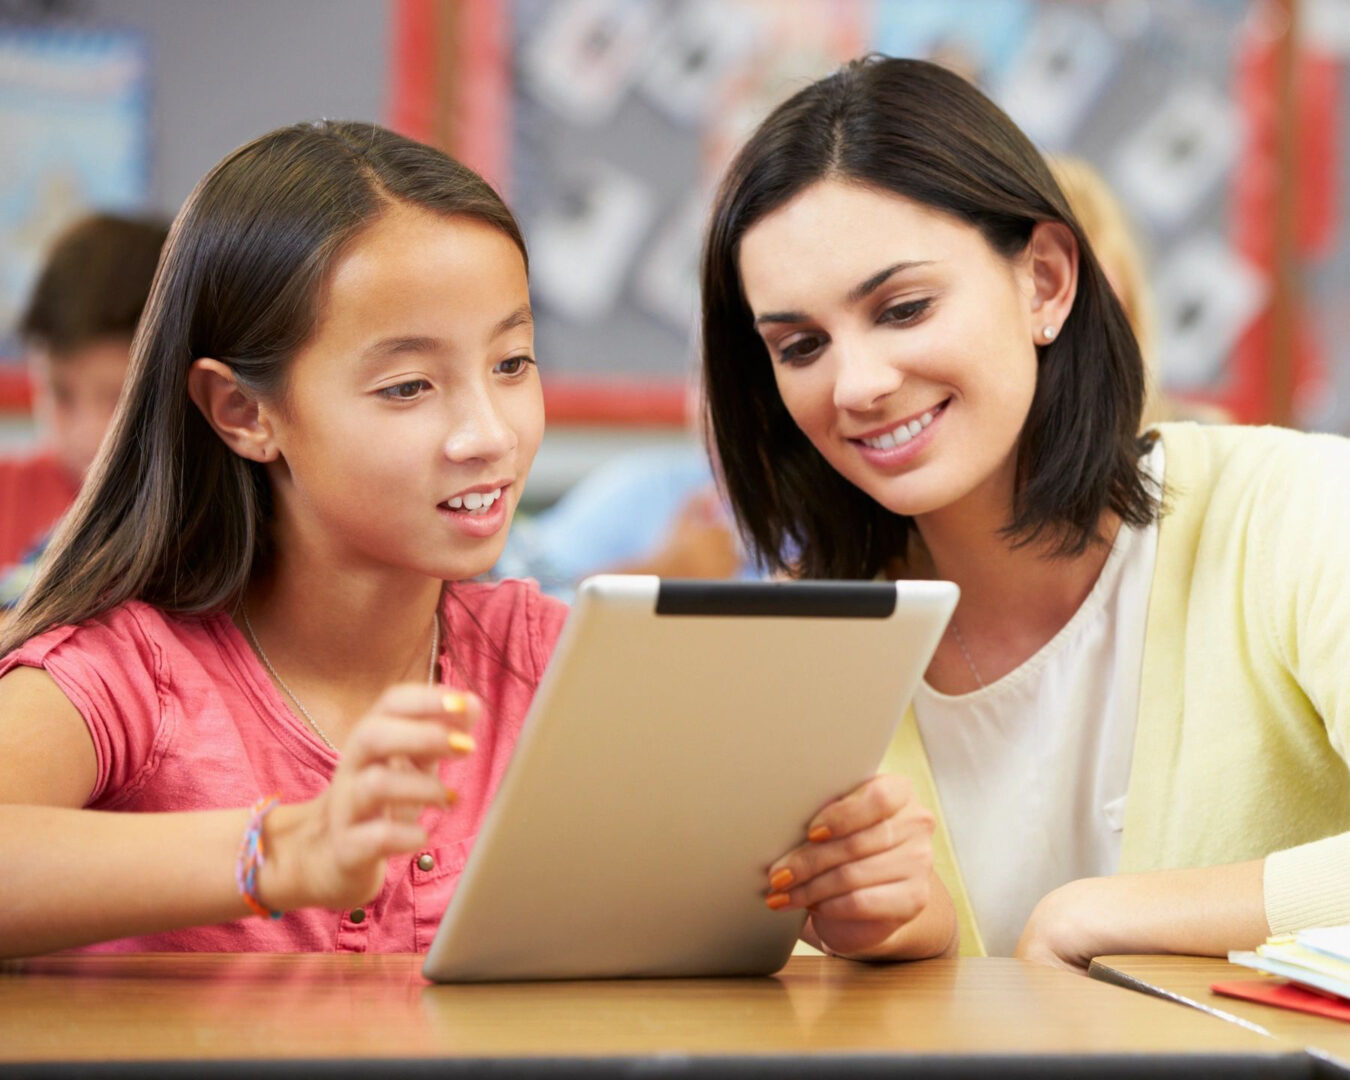 An adult woman and a girl looking at an iPad